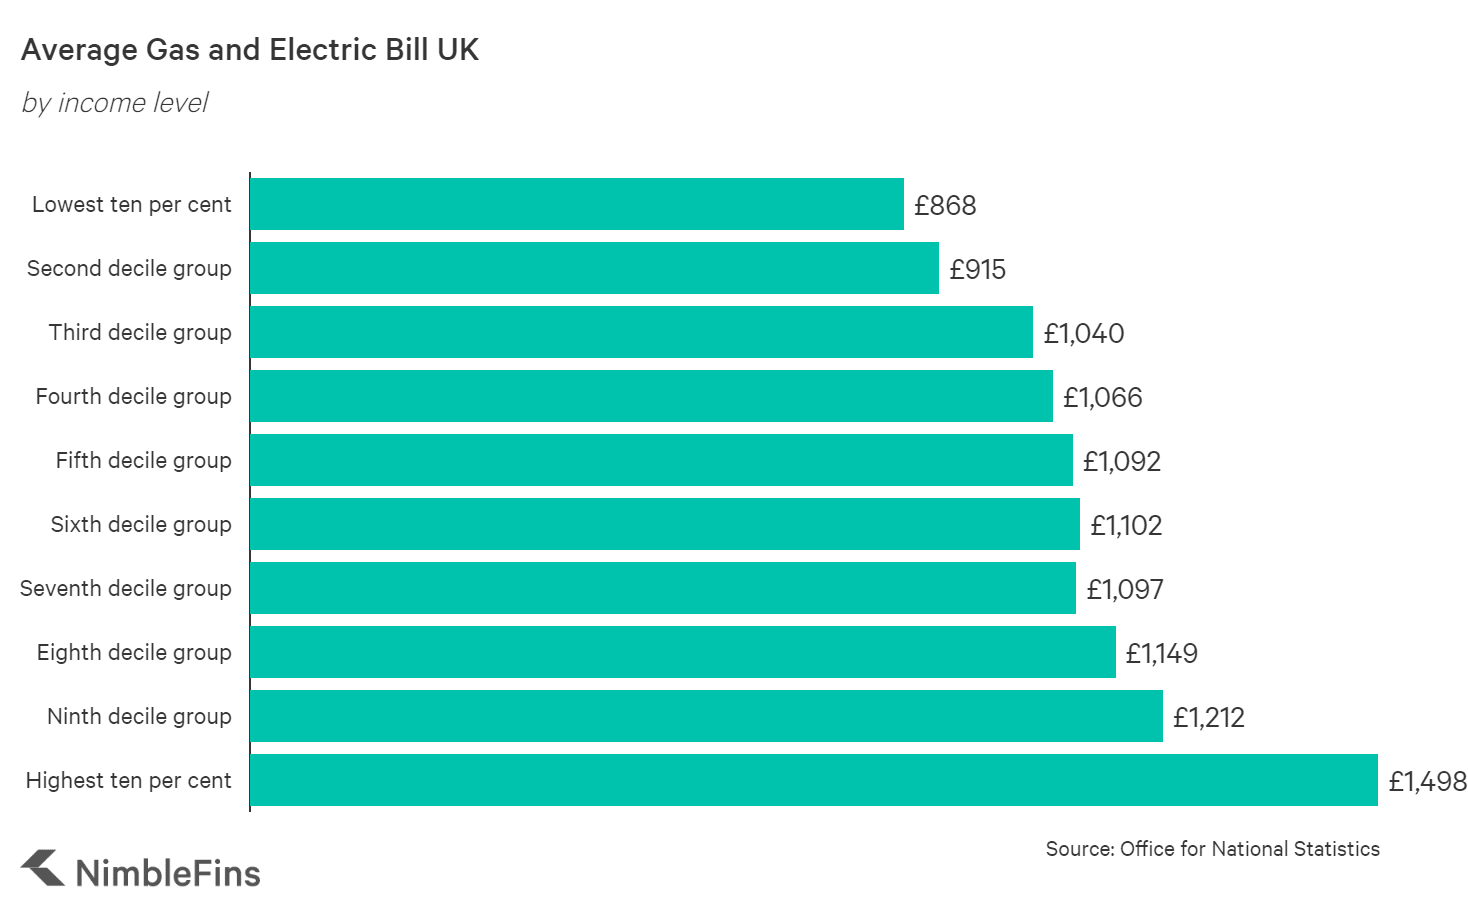 Column chart showing the average gas and electric bill UK by income level